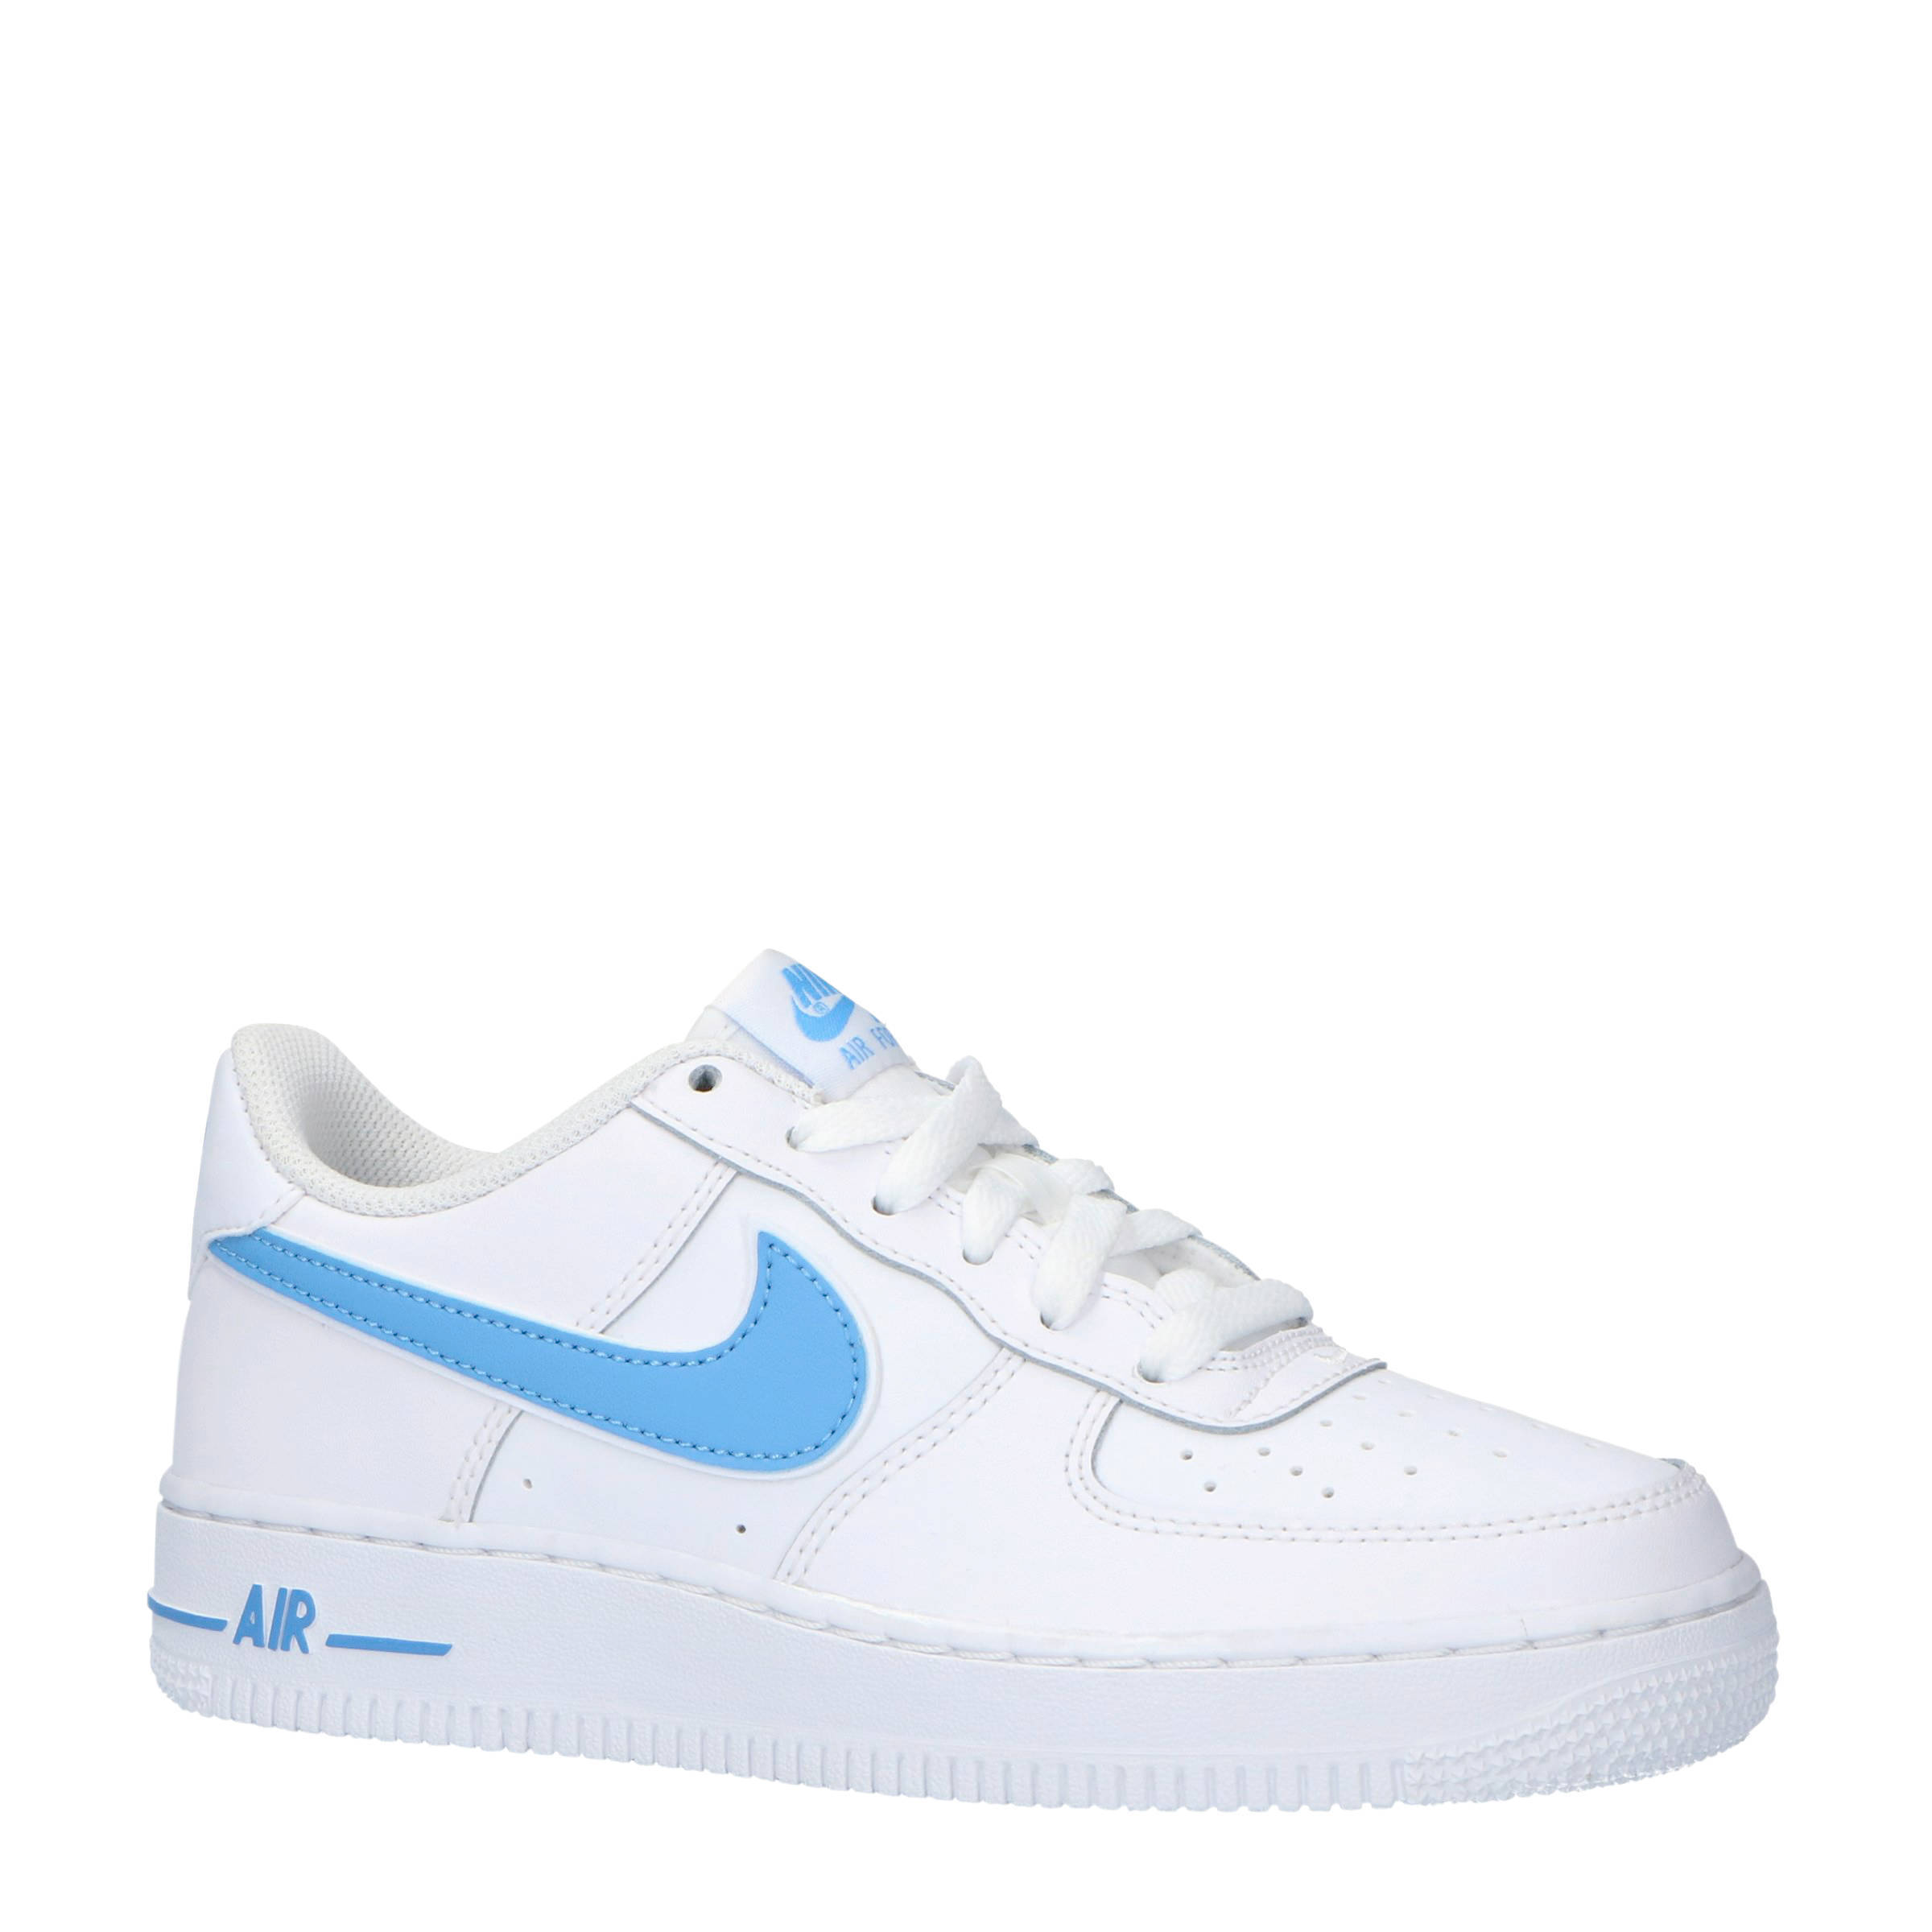 Nike Air Force 1-3 (GS) sneakers leer wit/lichtblauw | wehkamp